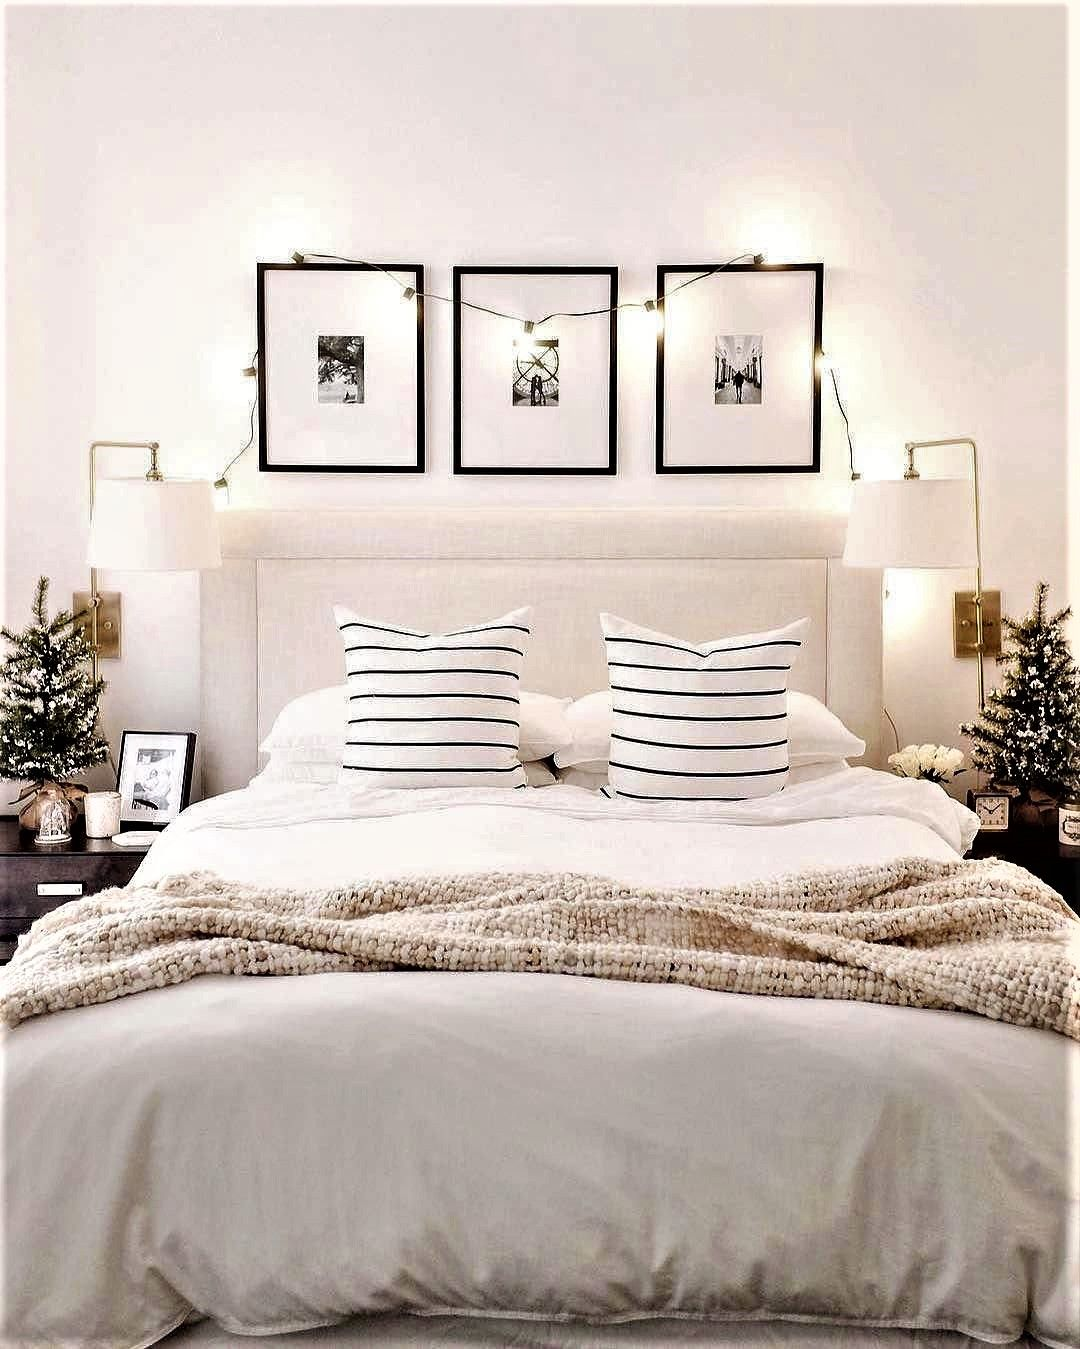 Room decor insta and pinterest amymckeown5